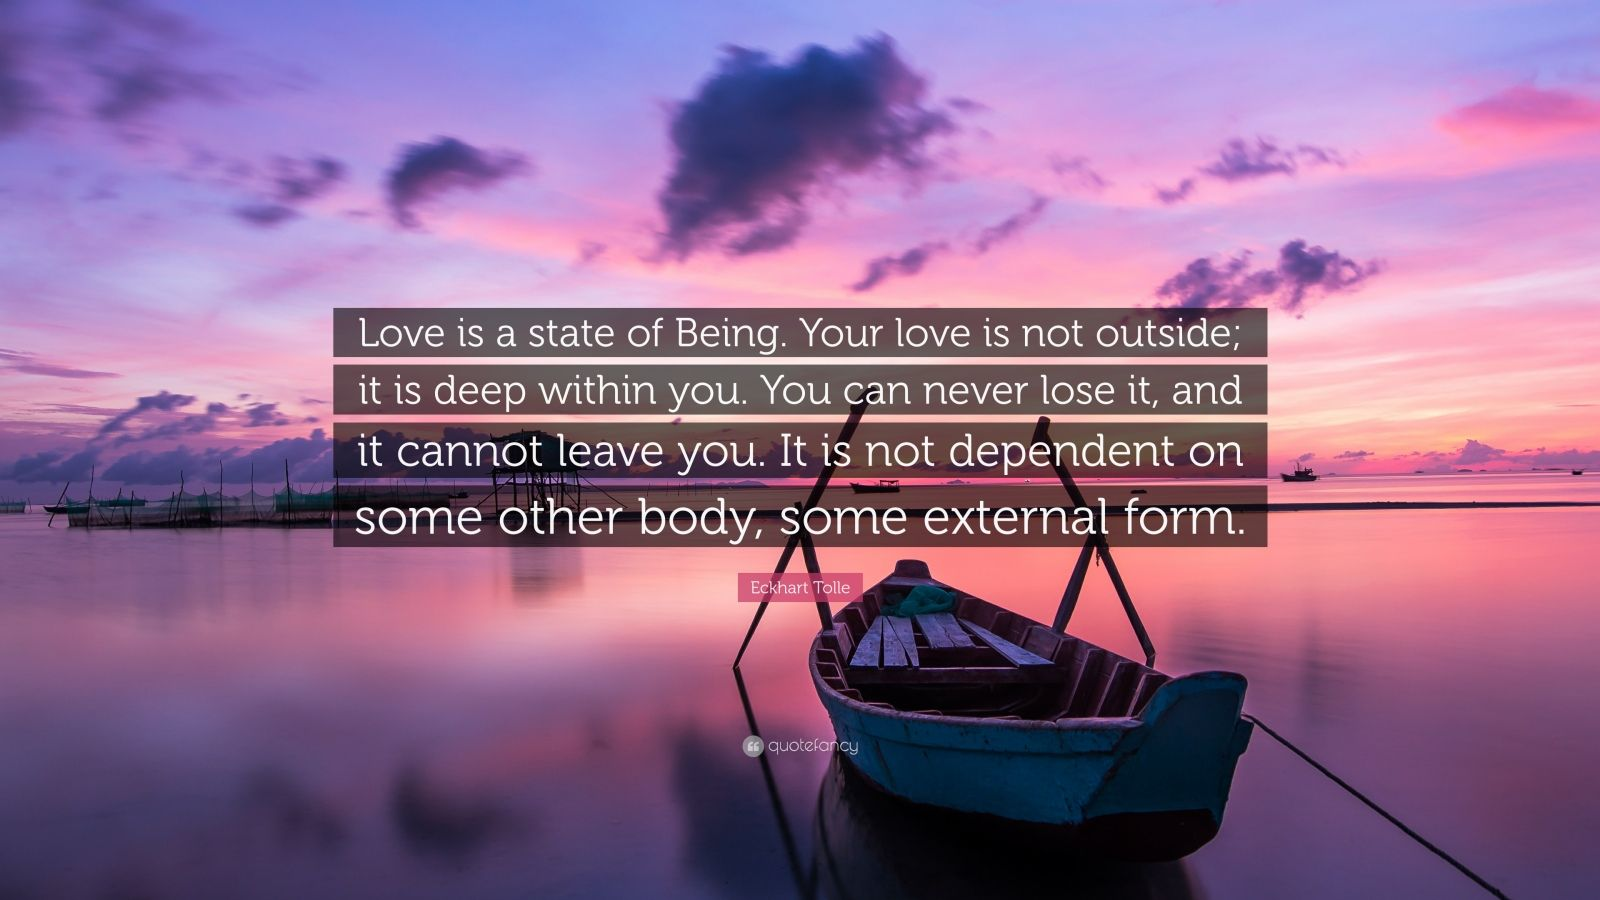 """Eckhart Tolle Quote: """"Love is a state of Being. Your love is not outside; it is deep within you. You can never lose it, and it cannot leave you. It is not dependent on some other body, some external form."""""""